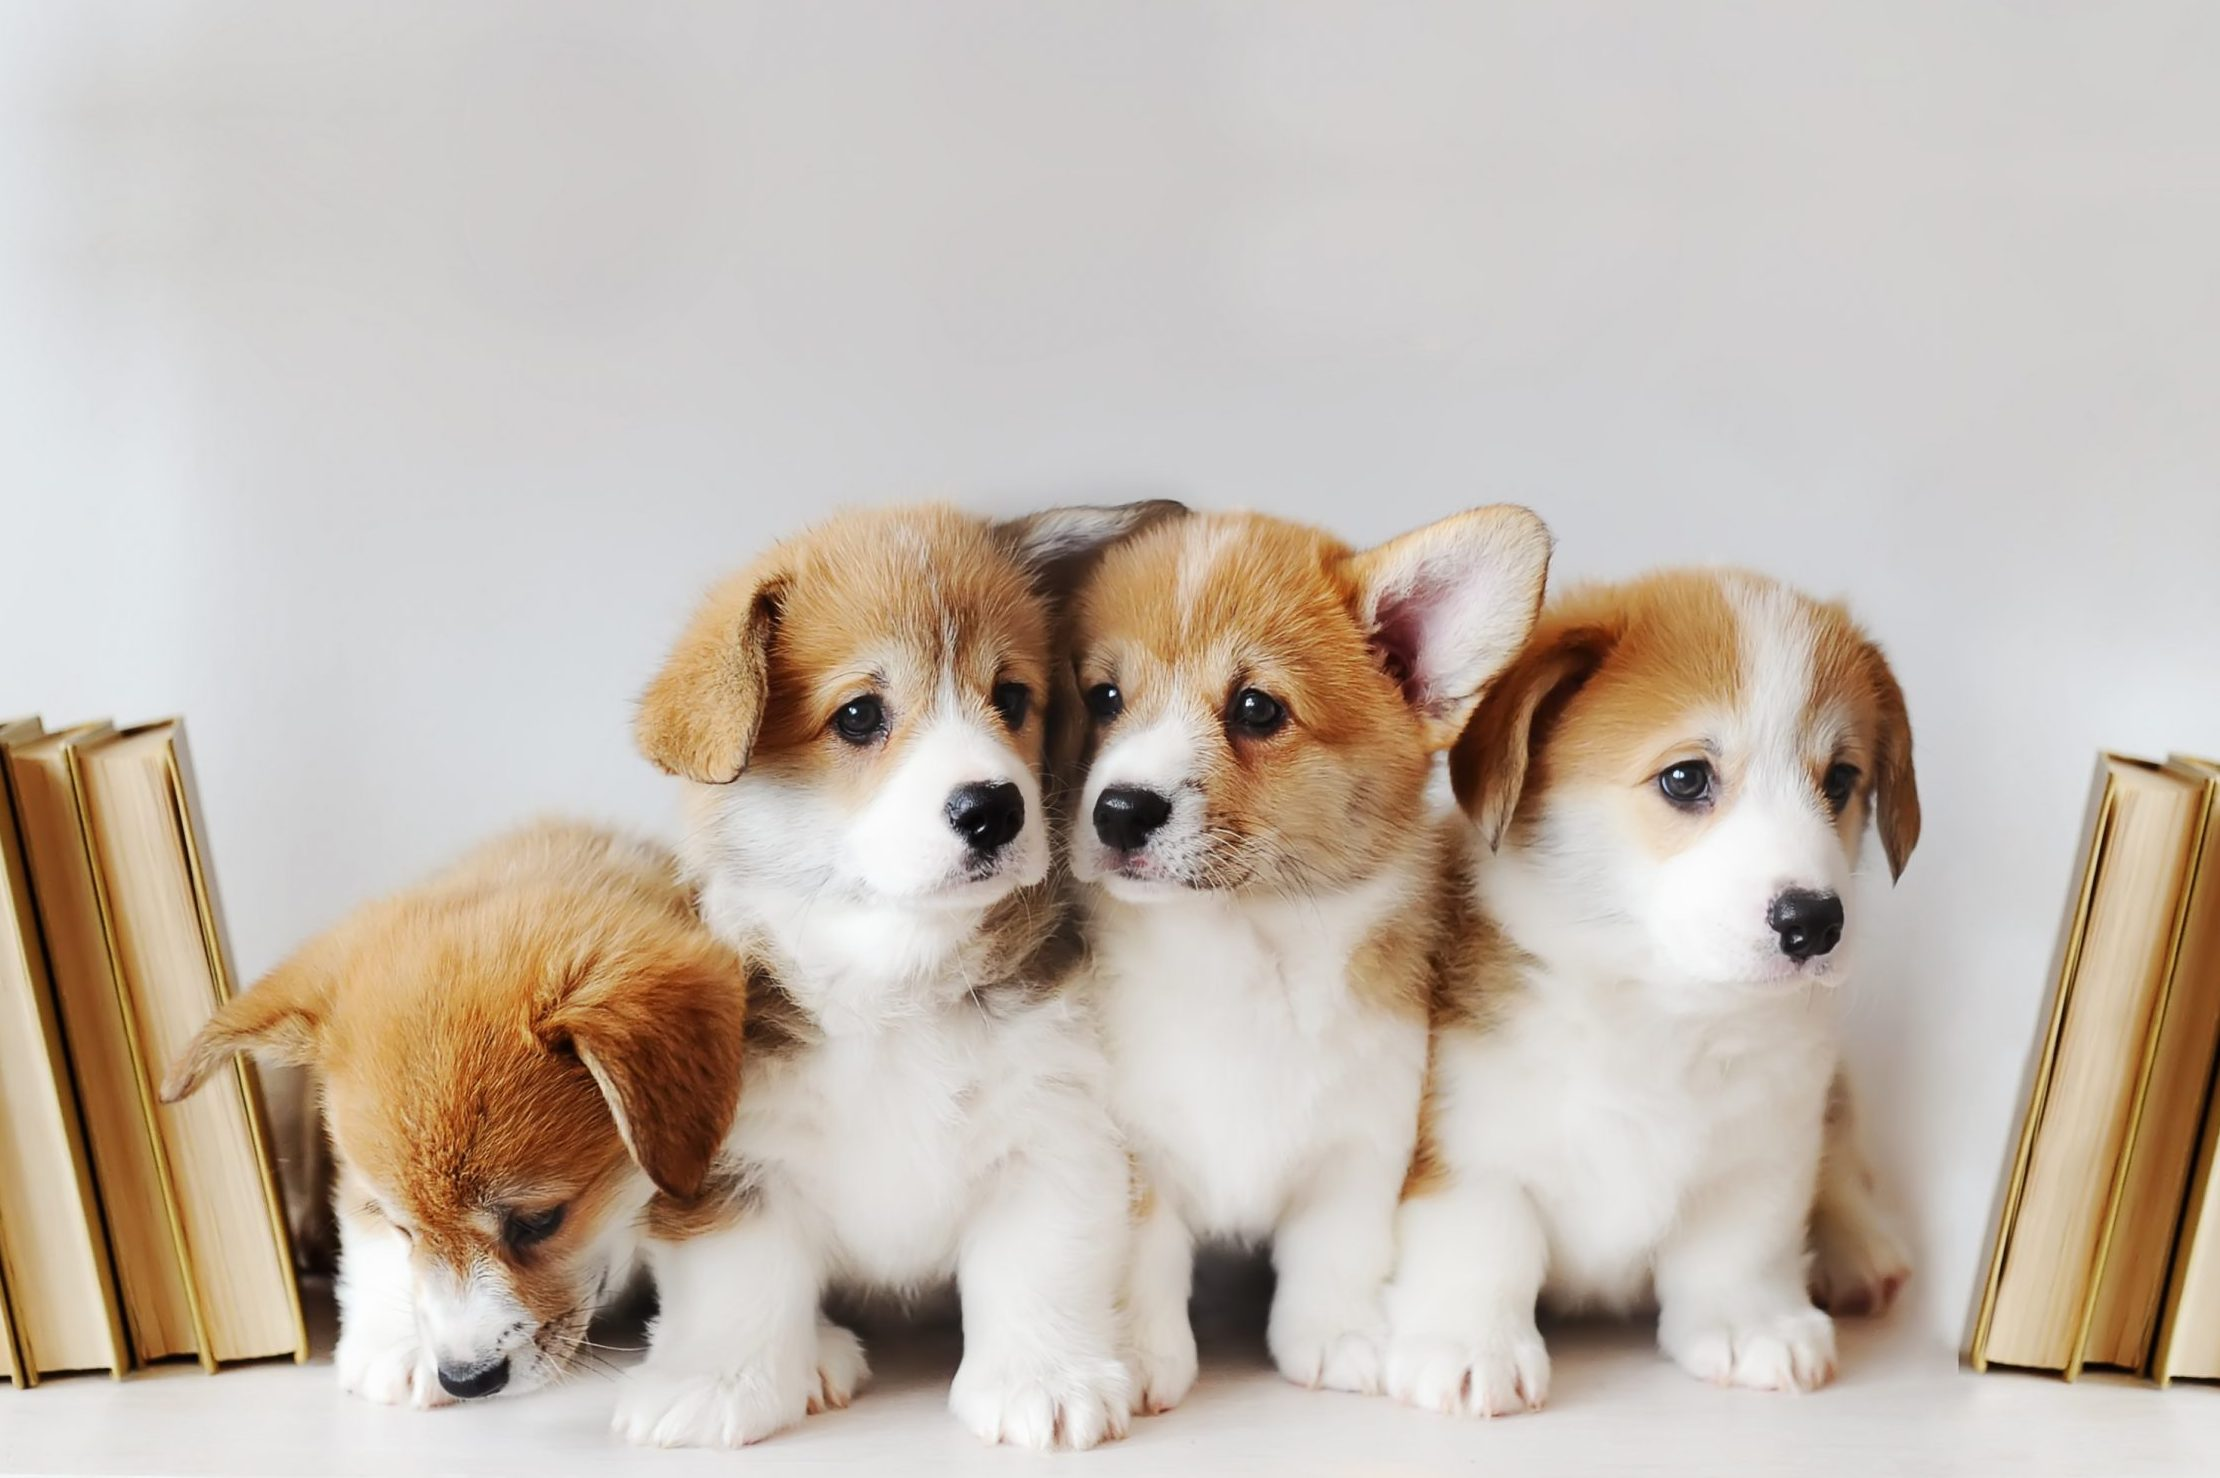 50 Cute Puppy Pictures That You Need to See — Puppy Pictures | Reader's  Digest